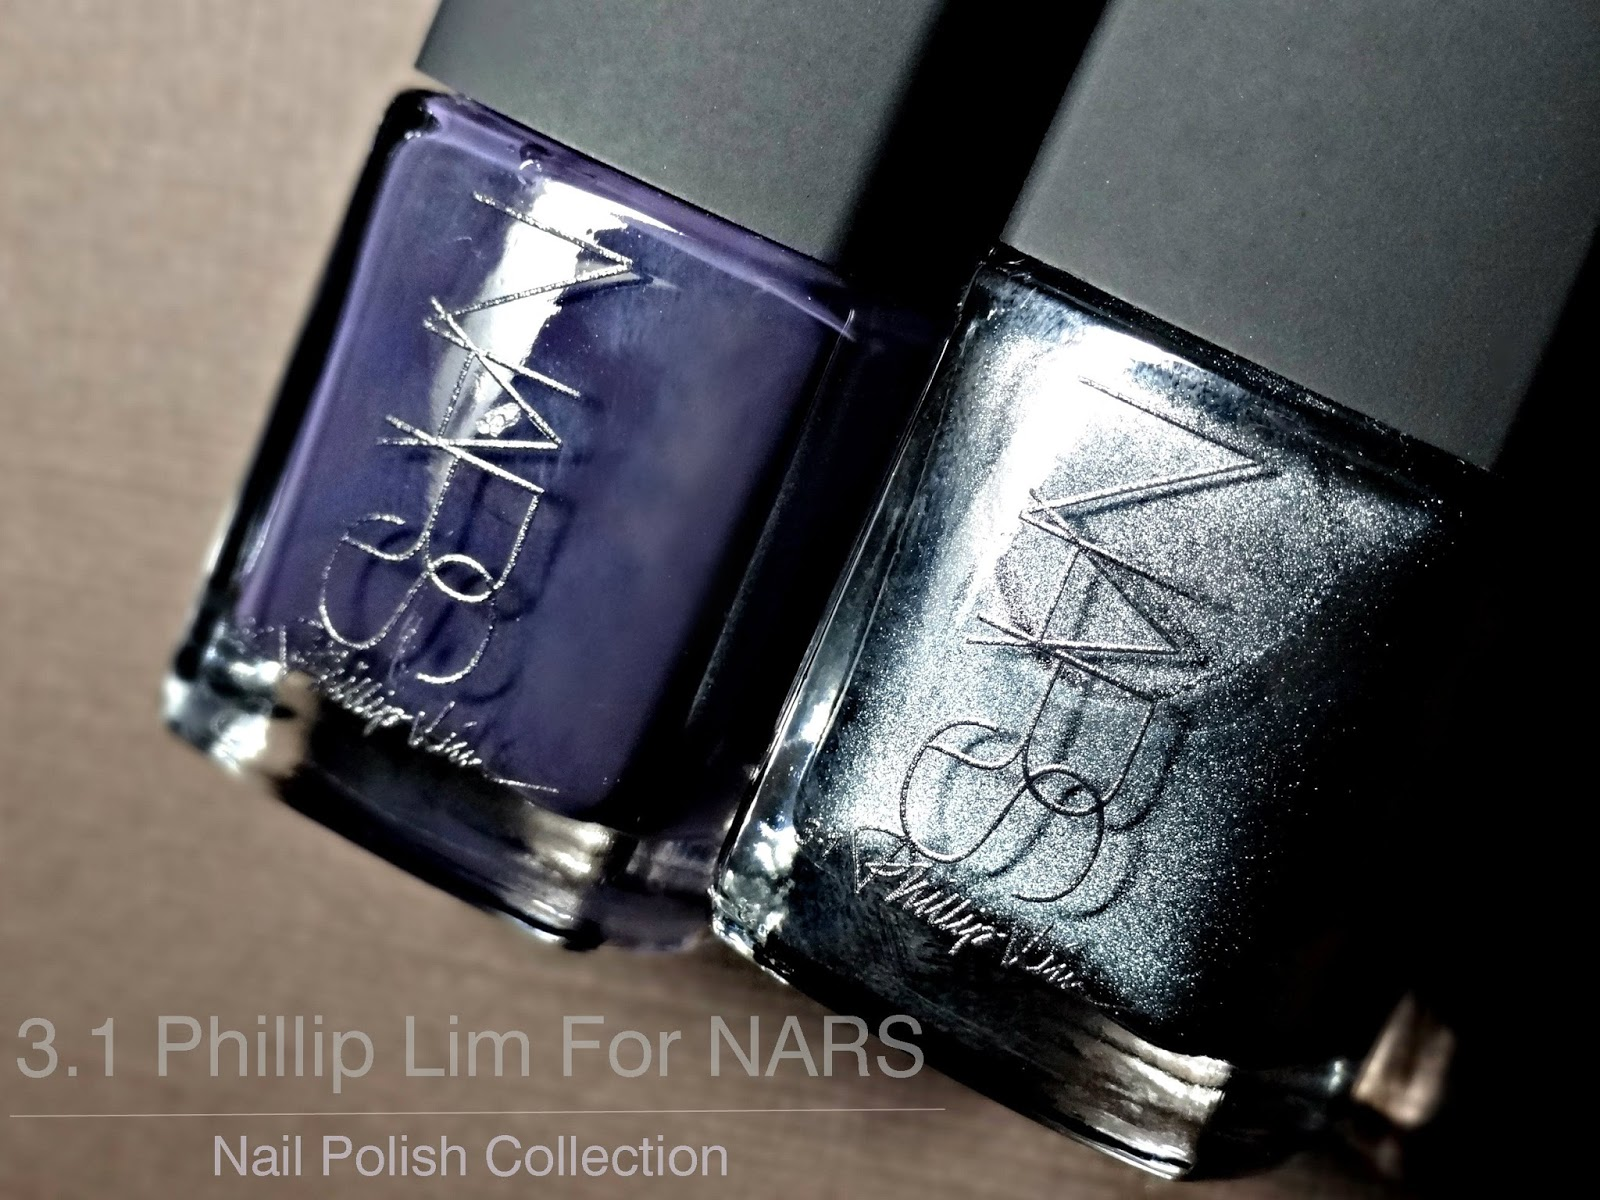 The 3.1 Phillip Lim for NARS Nail Collection Crossroads and Wrong Turn